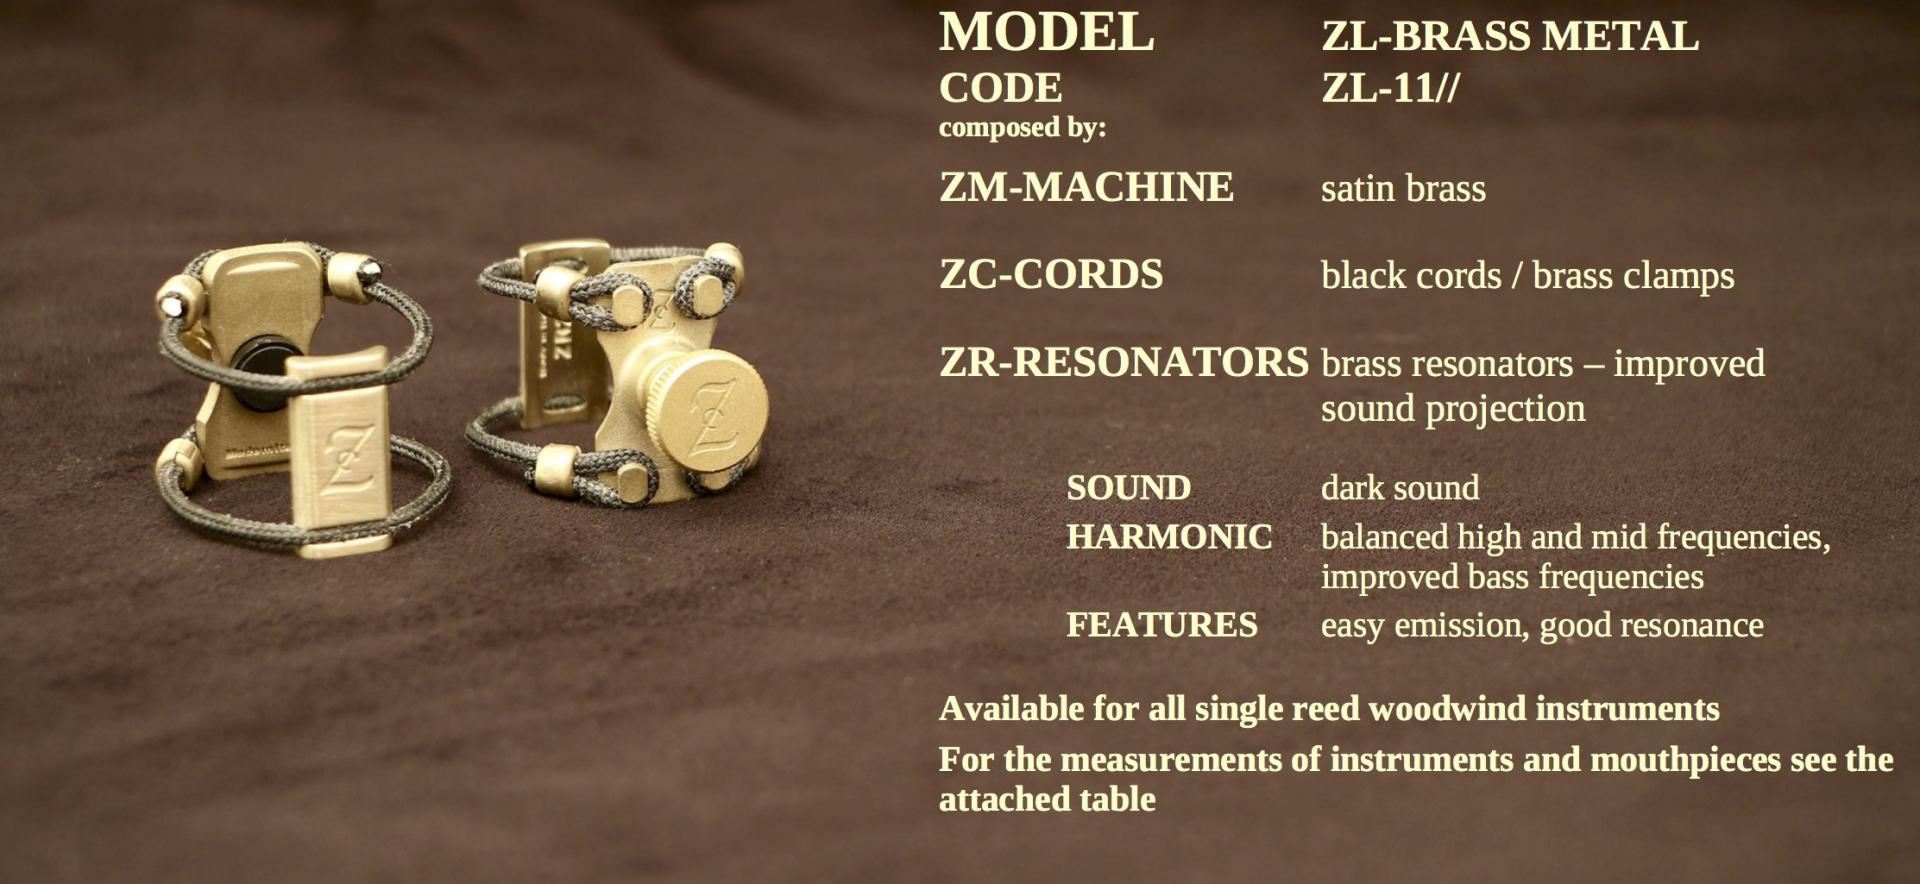 ZAC LIGATURE MODEL: ZL-BRASS METAL